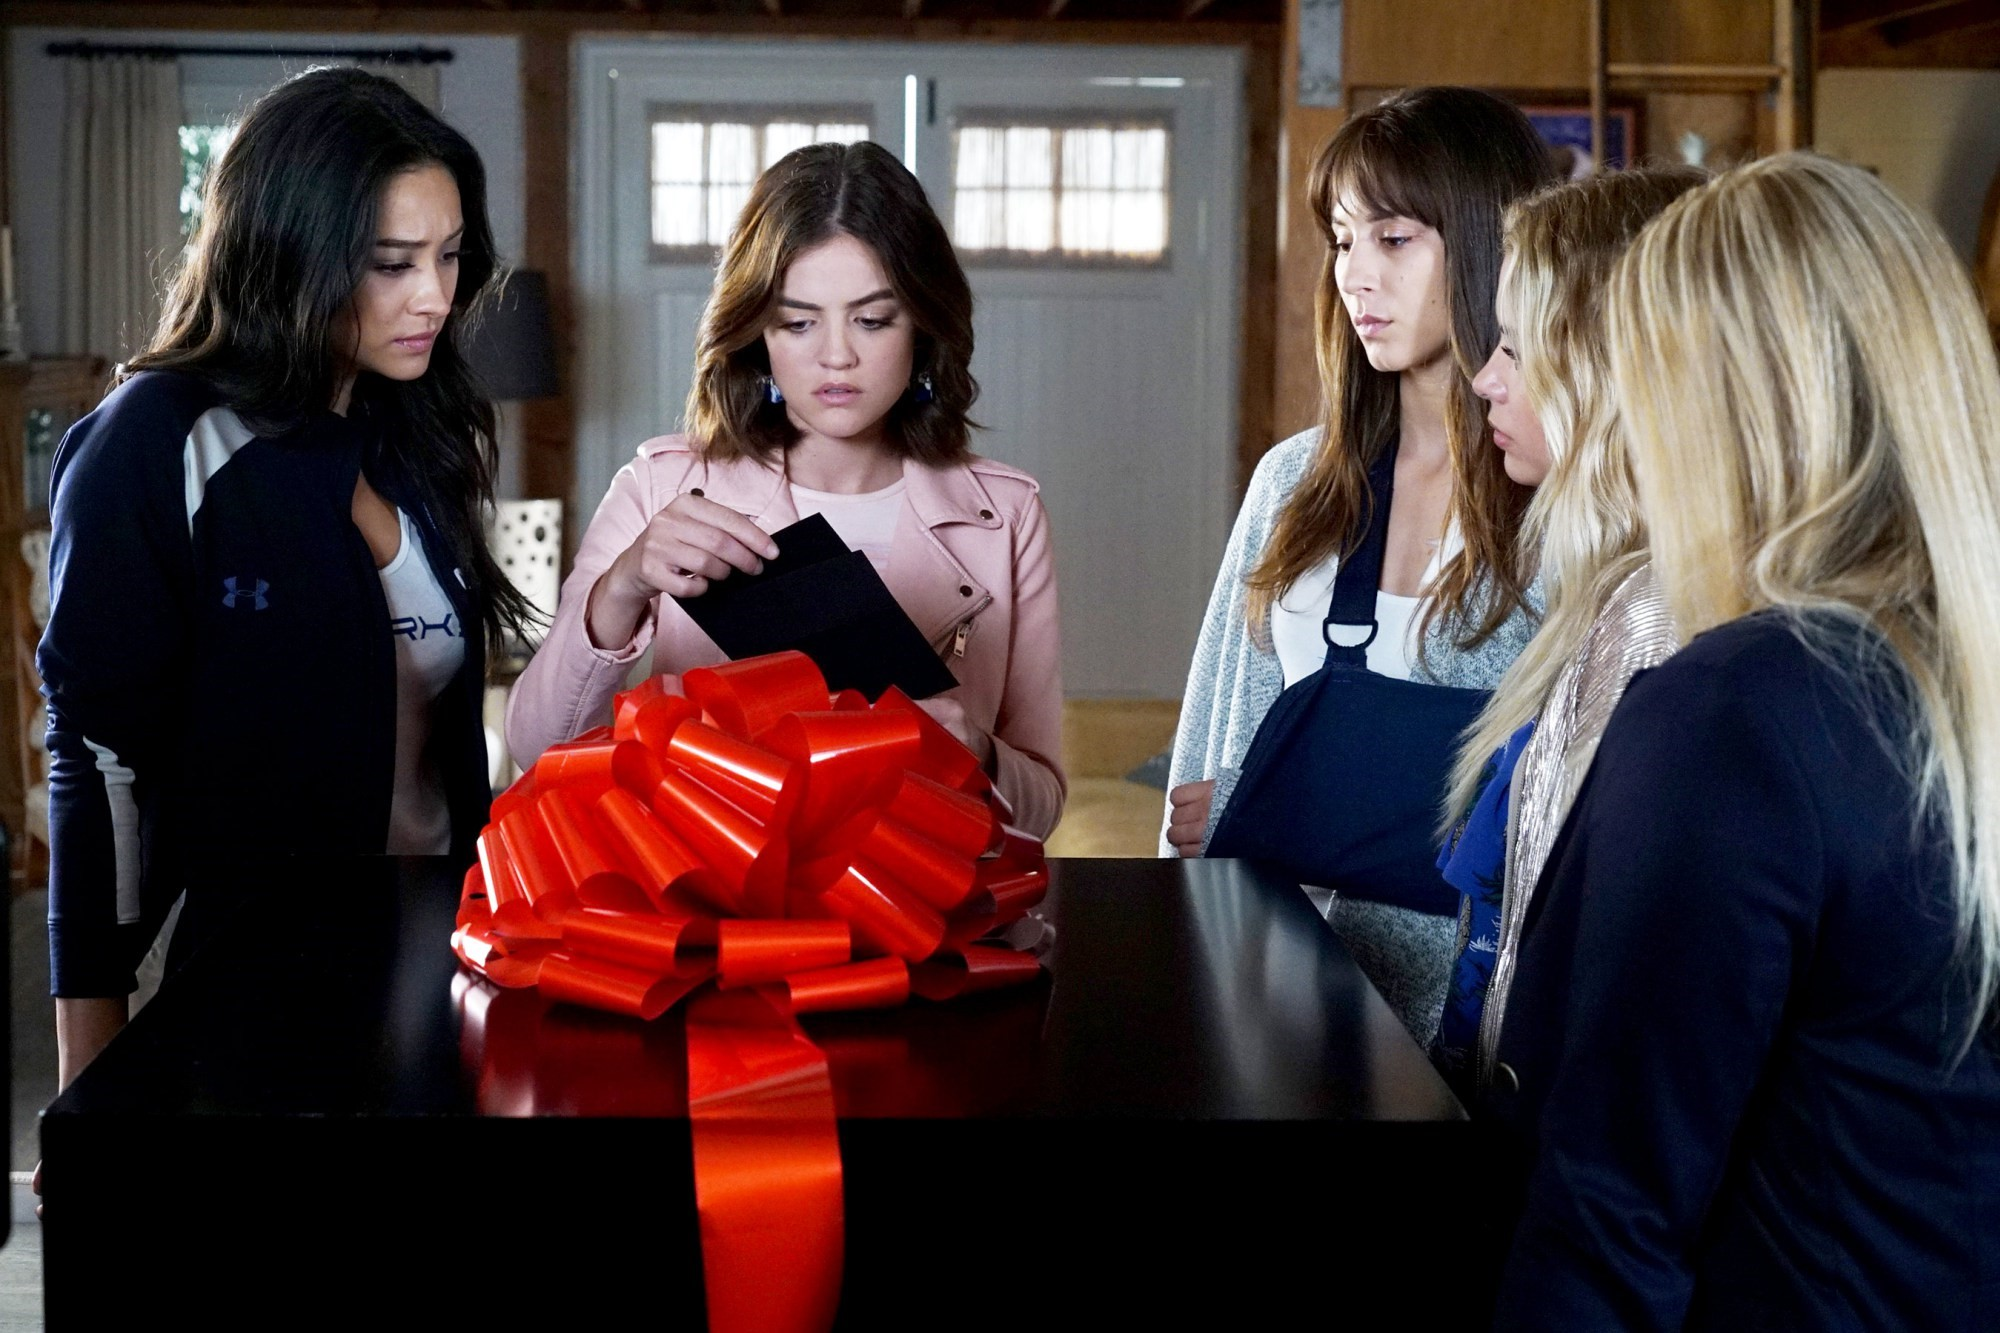 Pretty Little Liars: 10 questions we have after watching season 7 episode 11